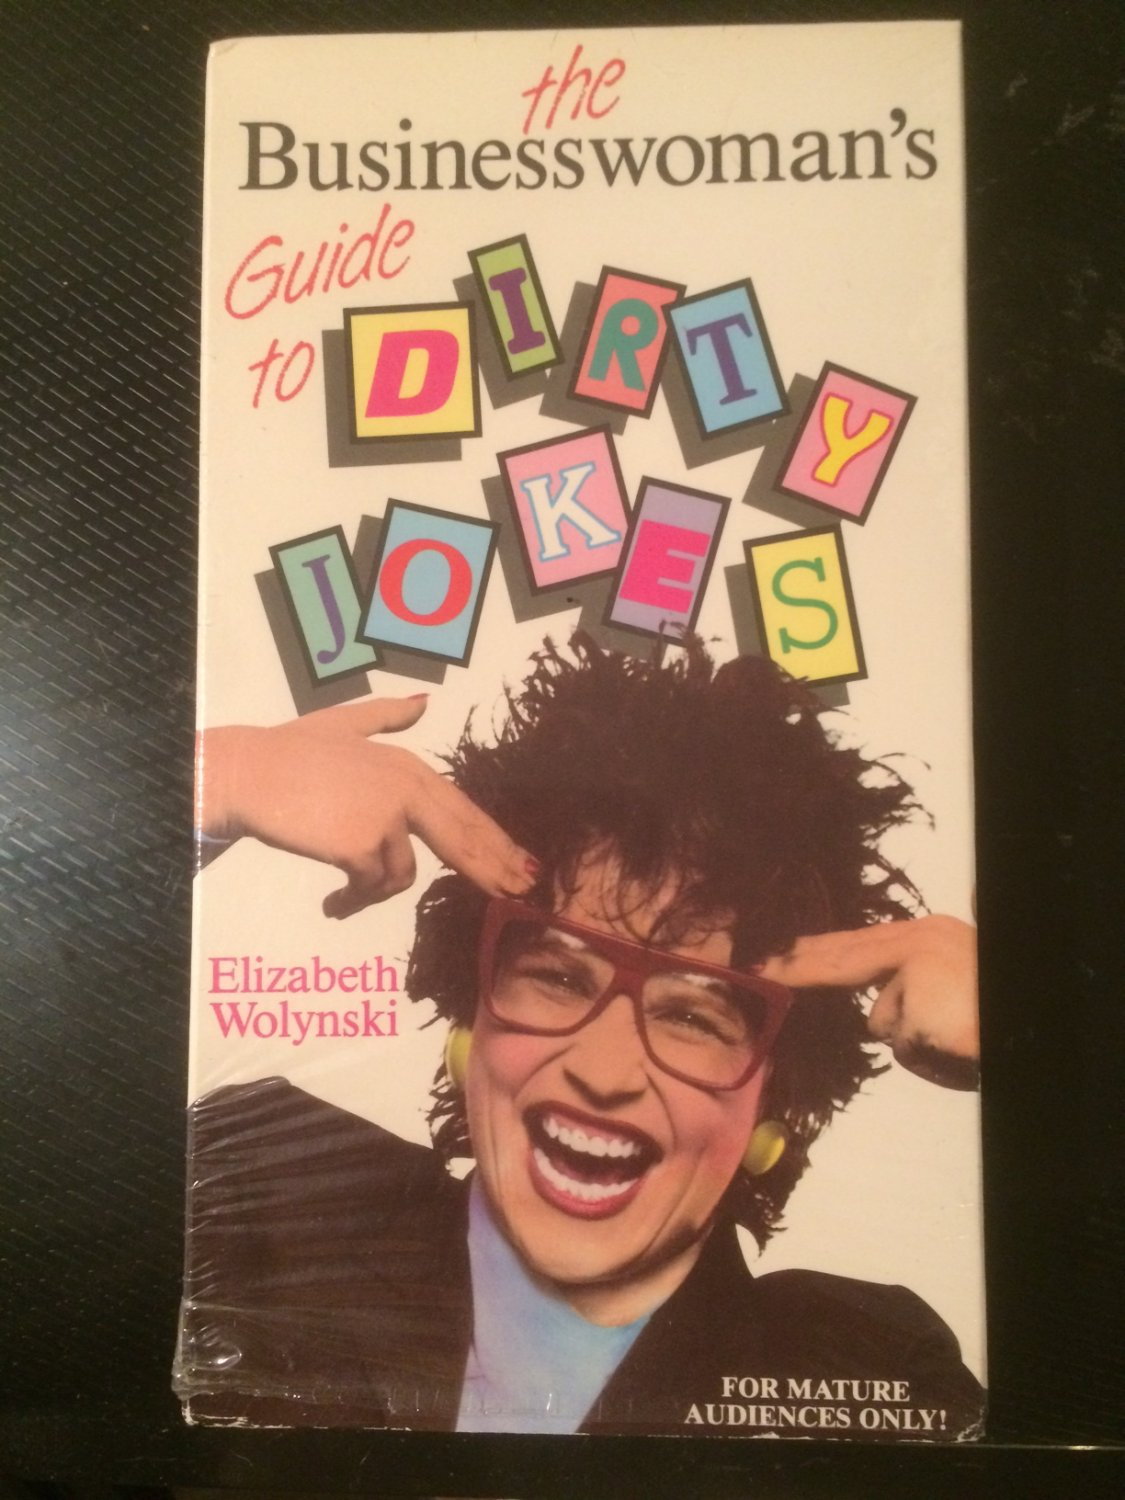 VHS - The Businesswoman's Guide to Dirty Jokes - Used - NOT ON DVD - ULTRA-RARE!